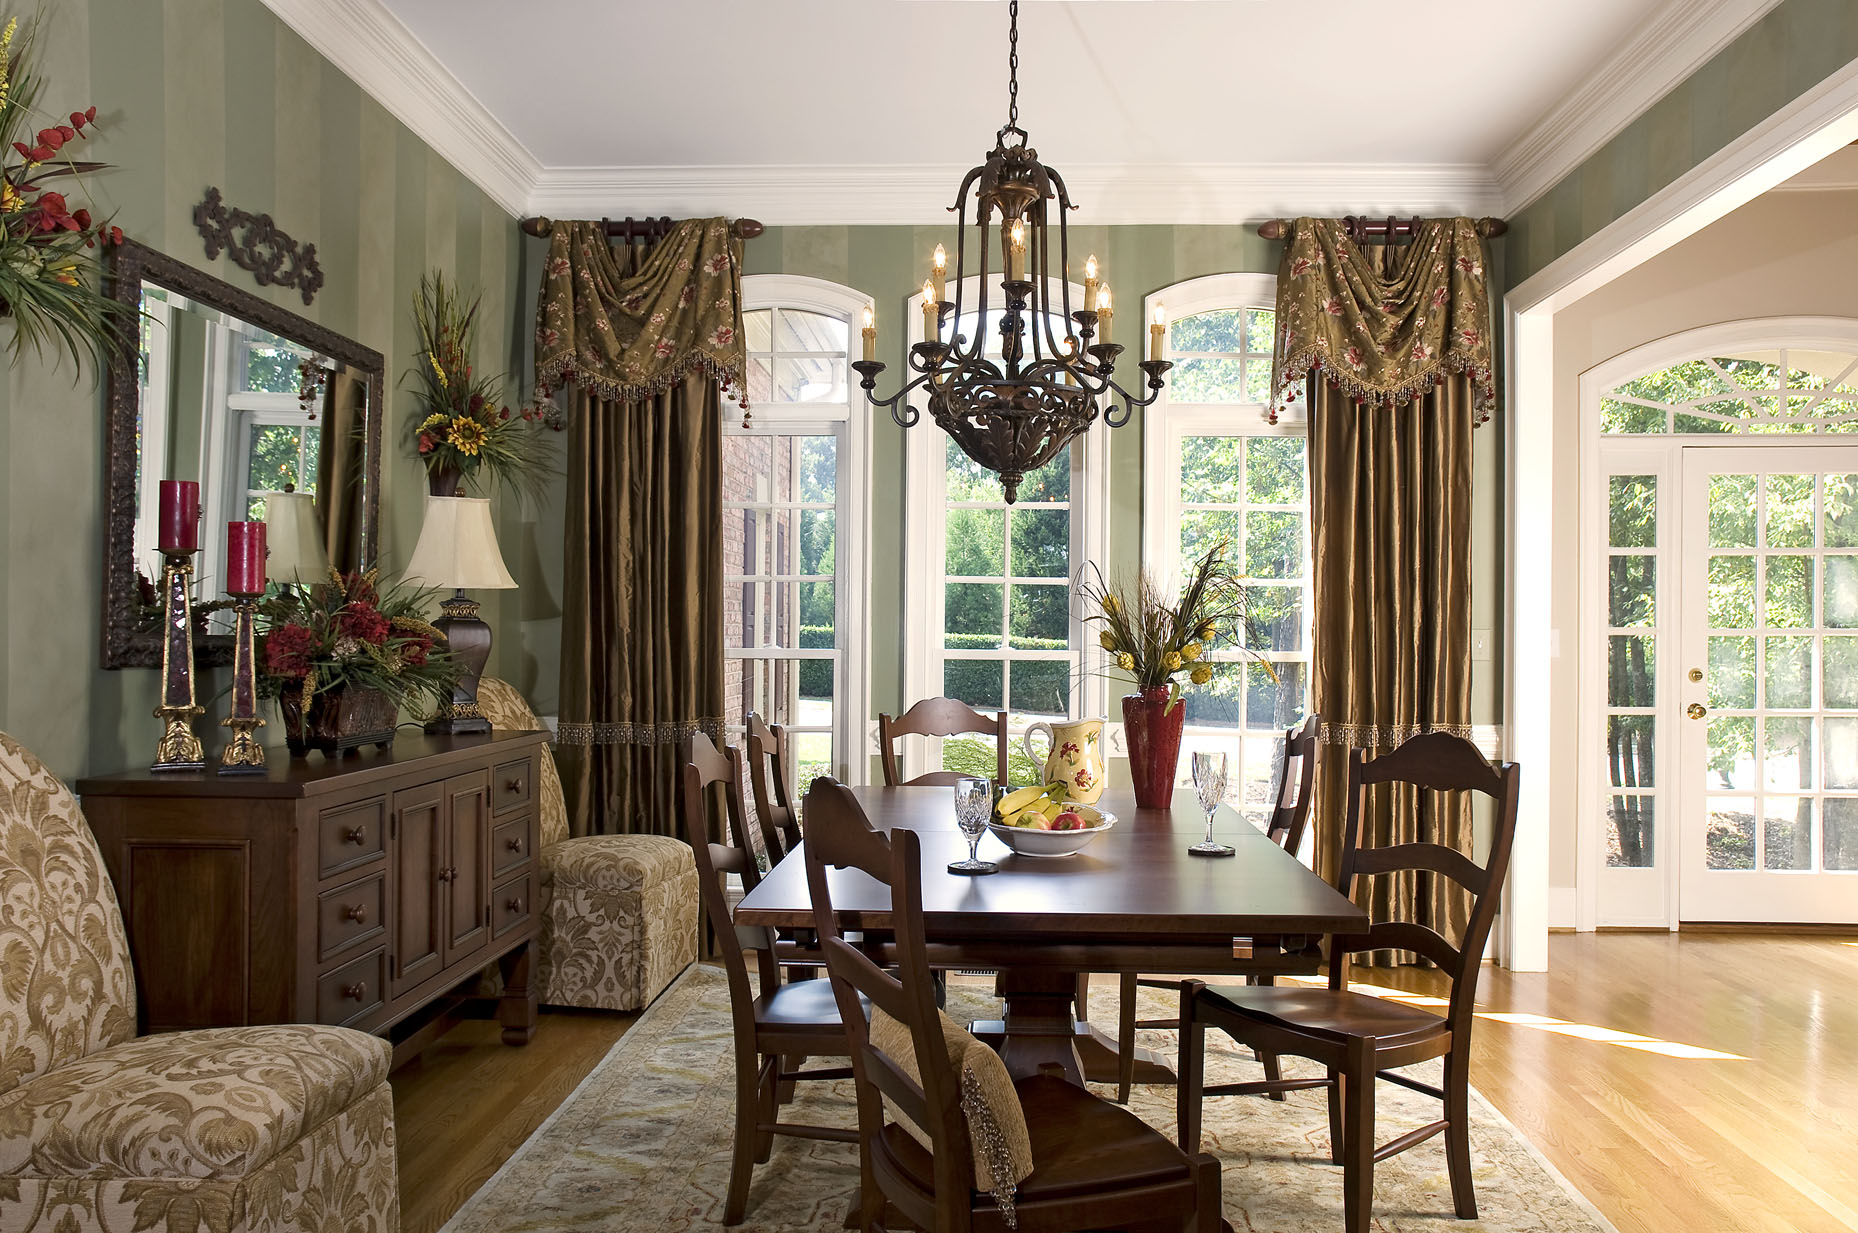 Window Treatments with Drama and Panache! - Decorating Den Interiors